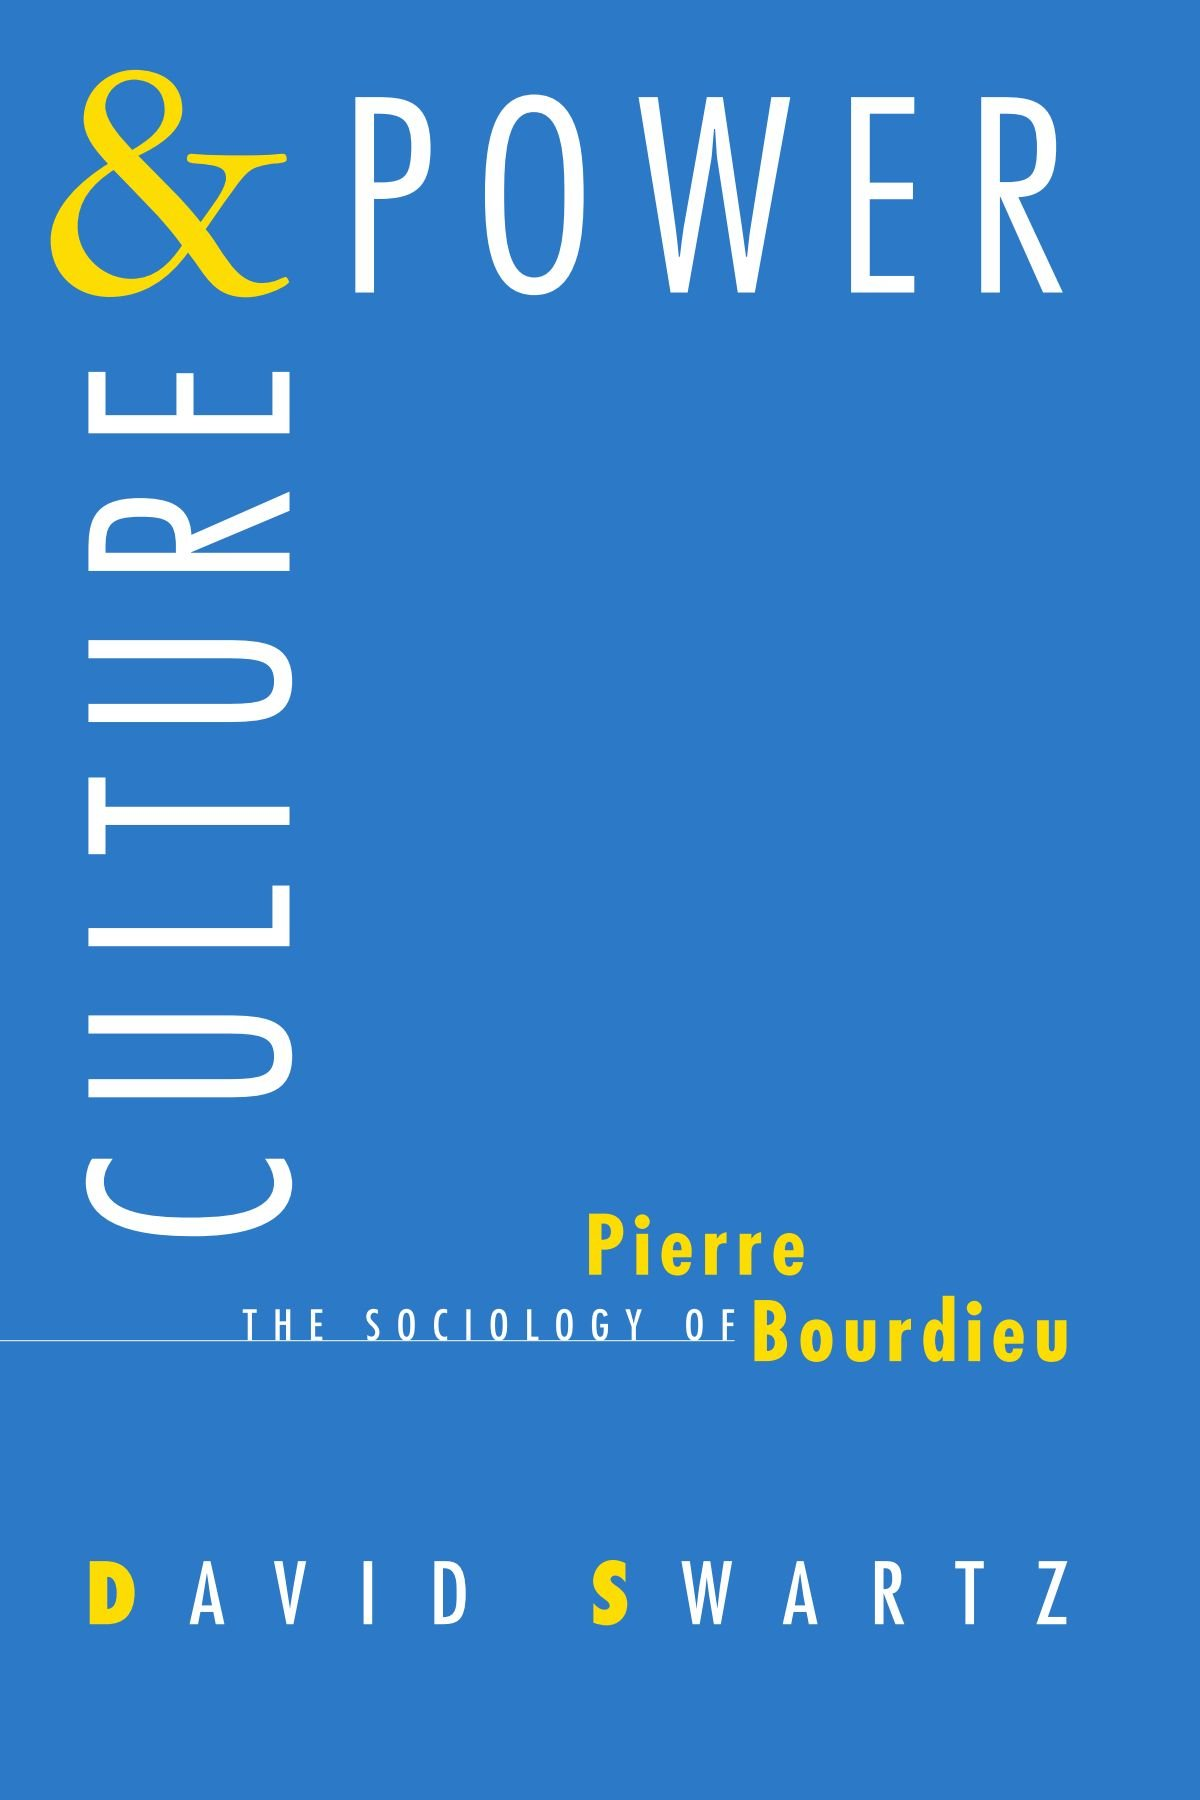 Culture And Power The Sociology Of Pierre Bourdieu Amazon